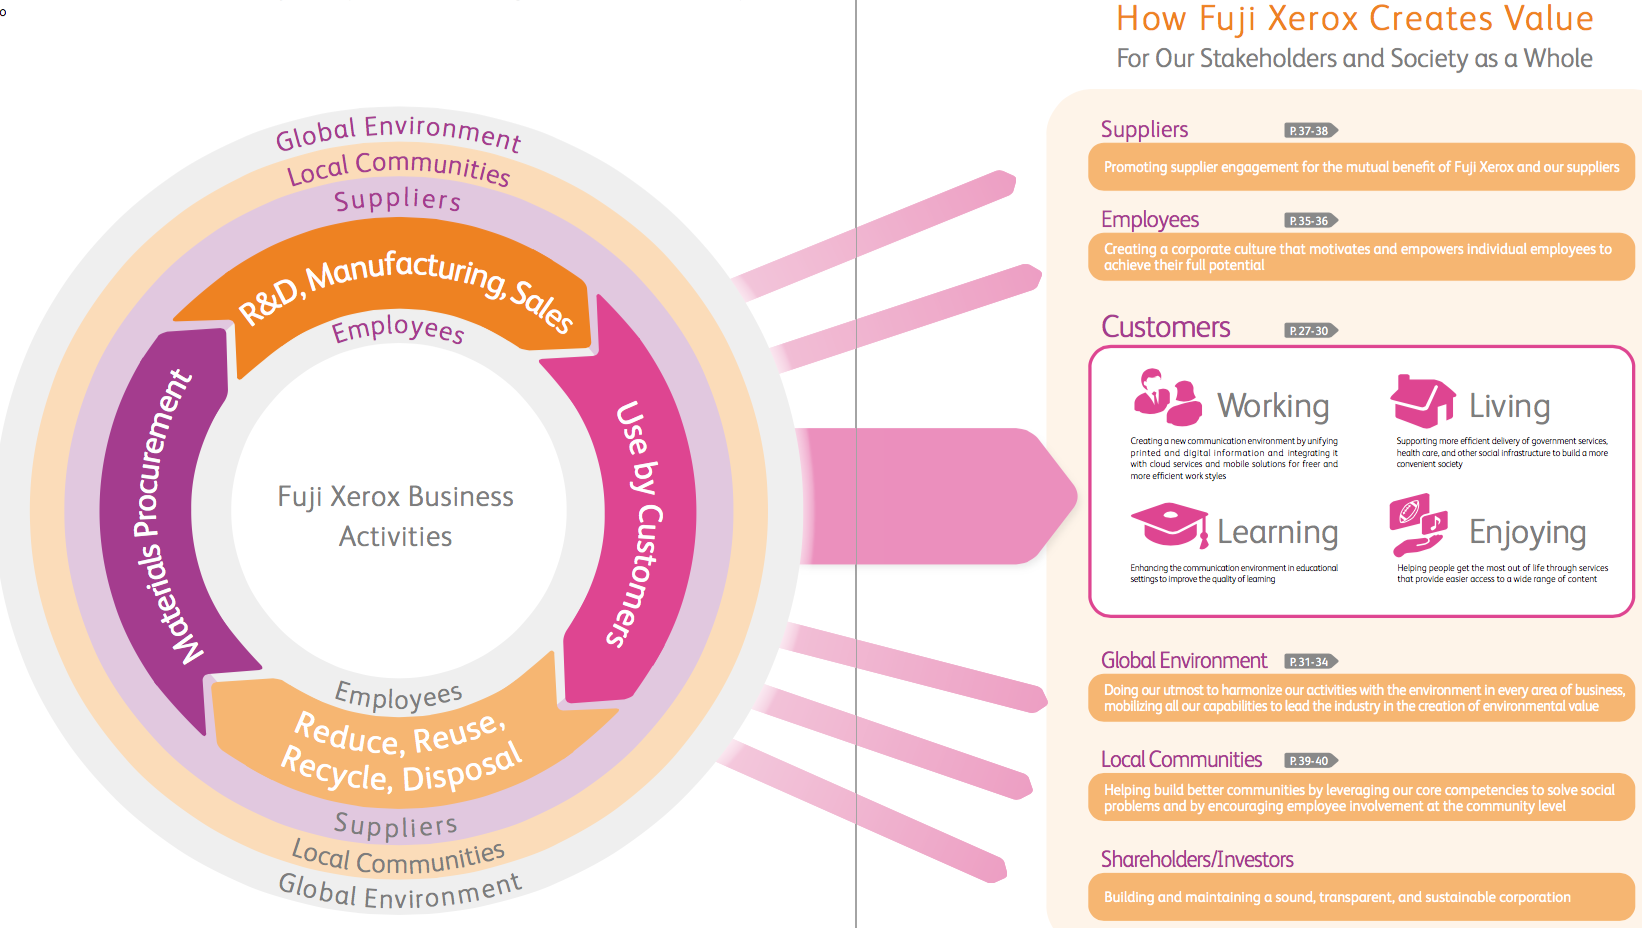 Figure 1. Business Activities and Value Creation